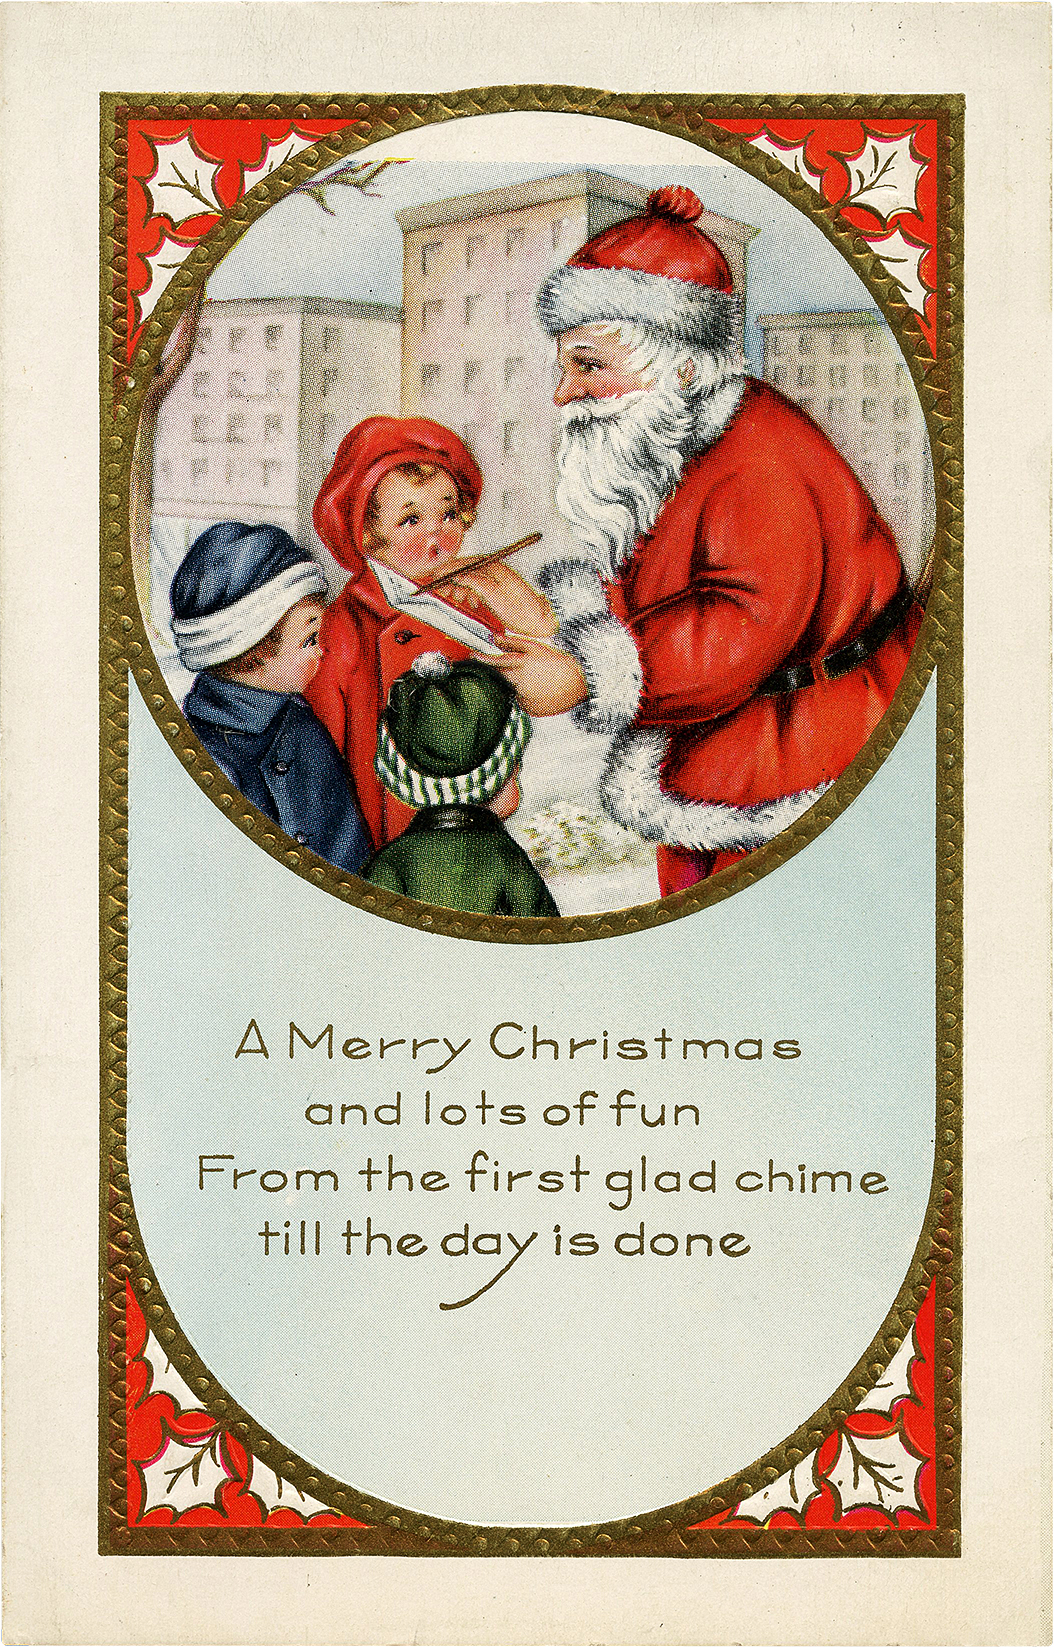 Vintage Card with Santa and Children Image!